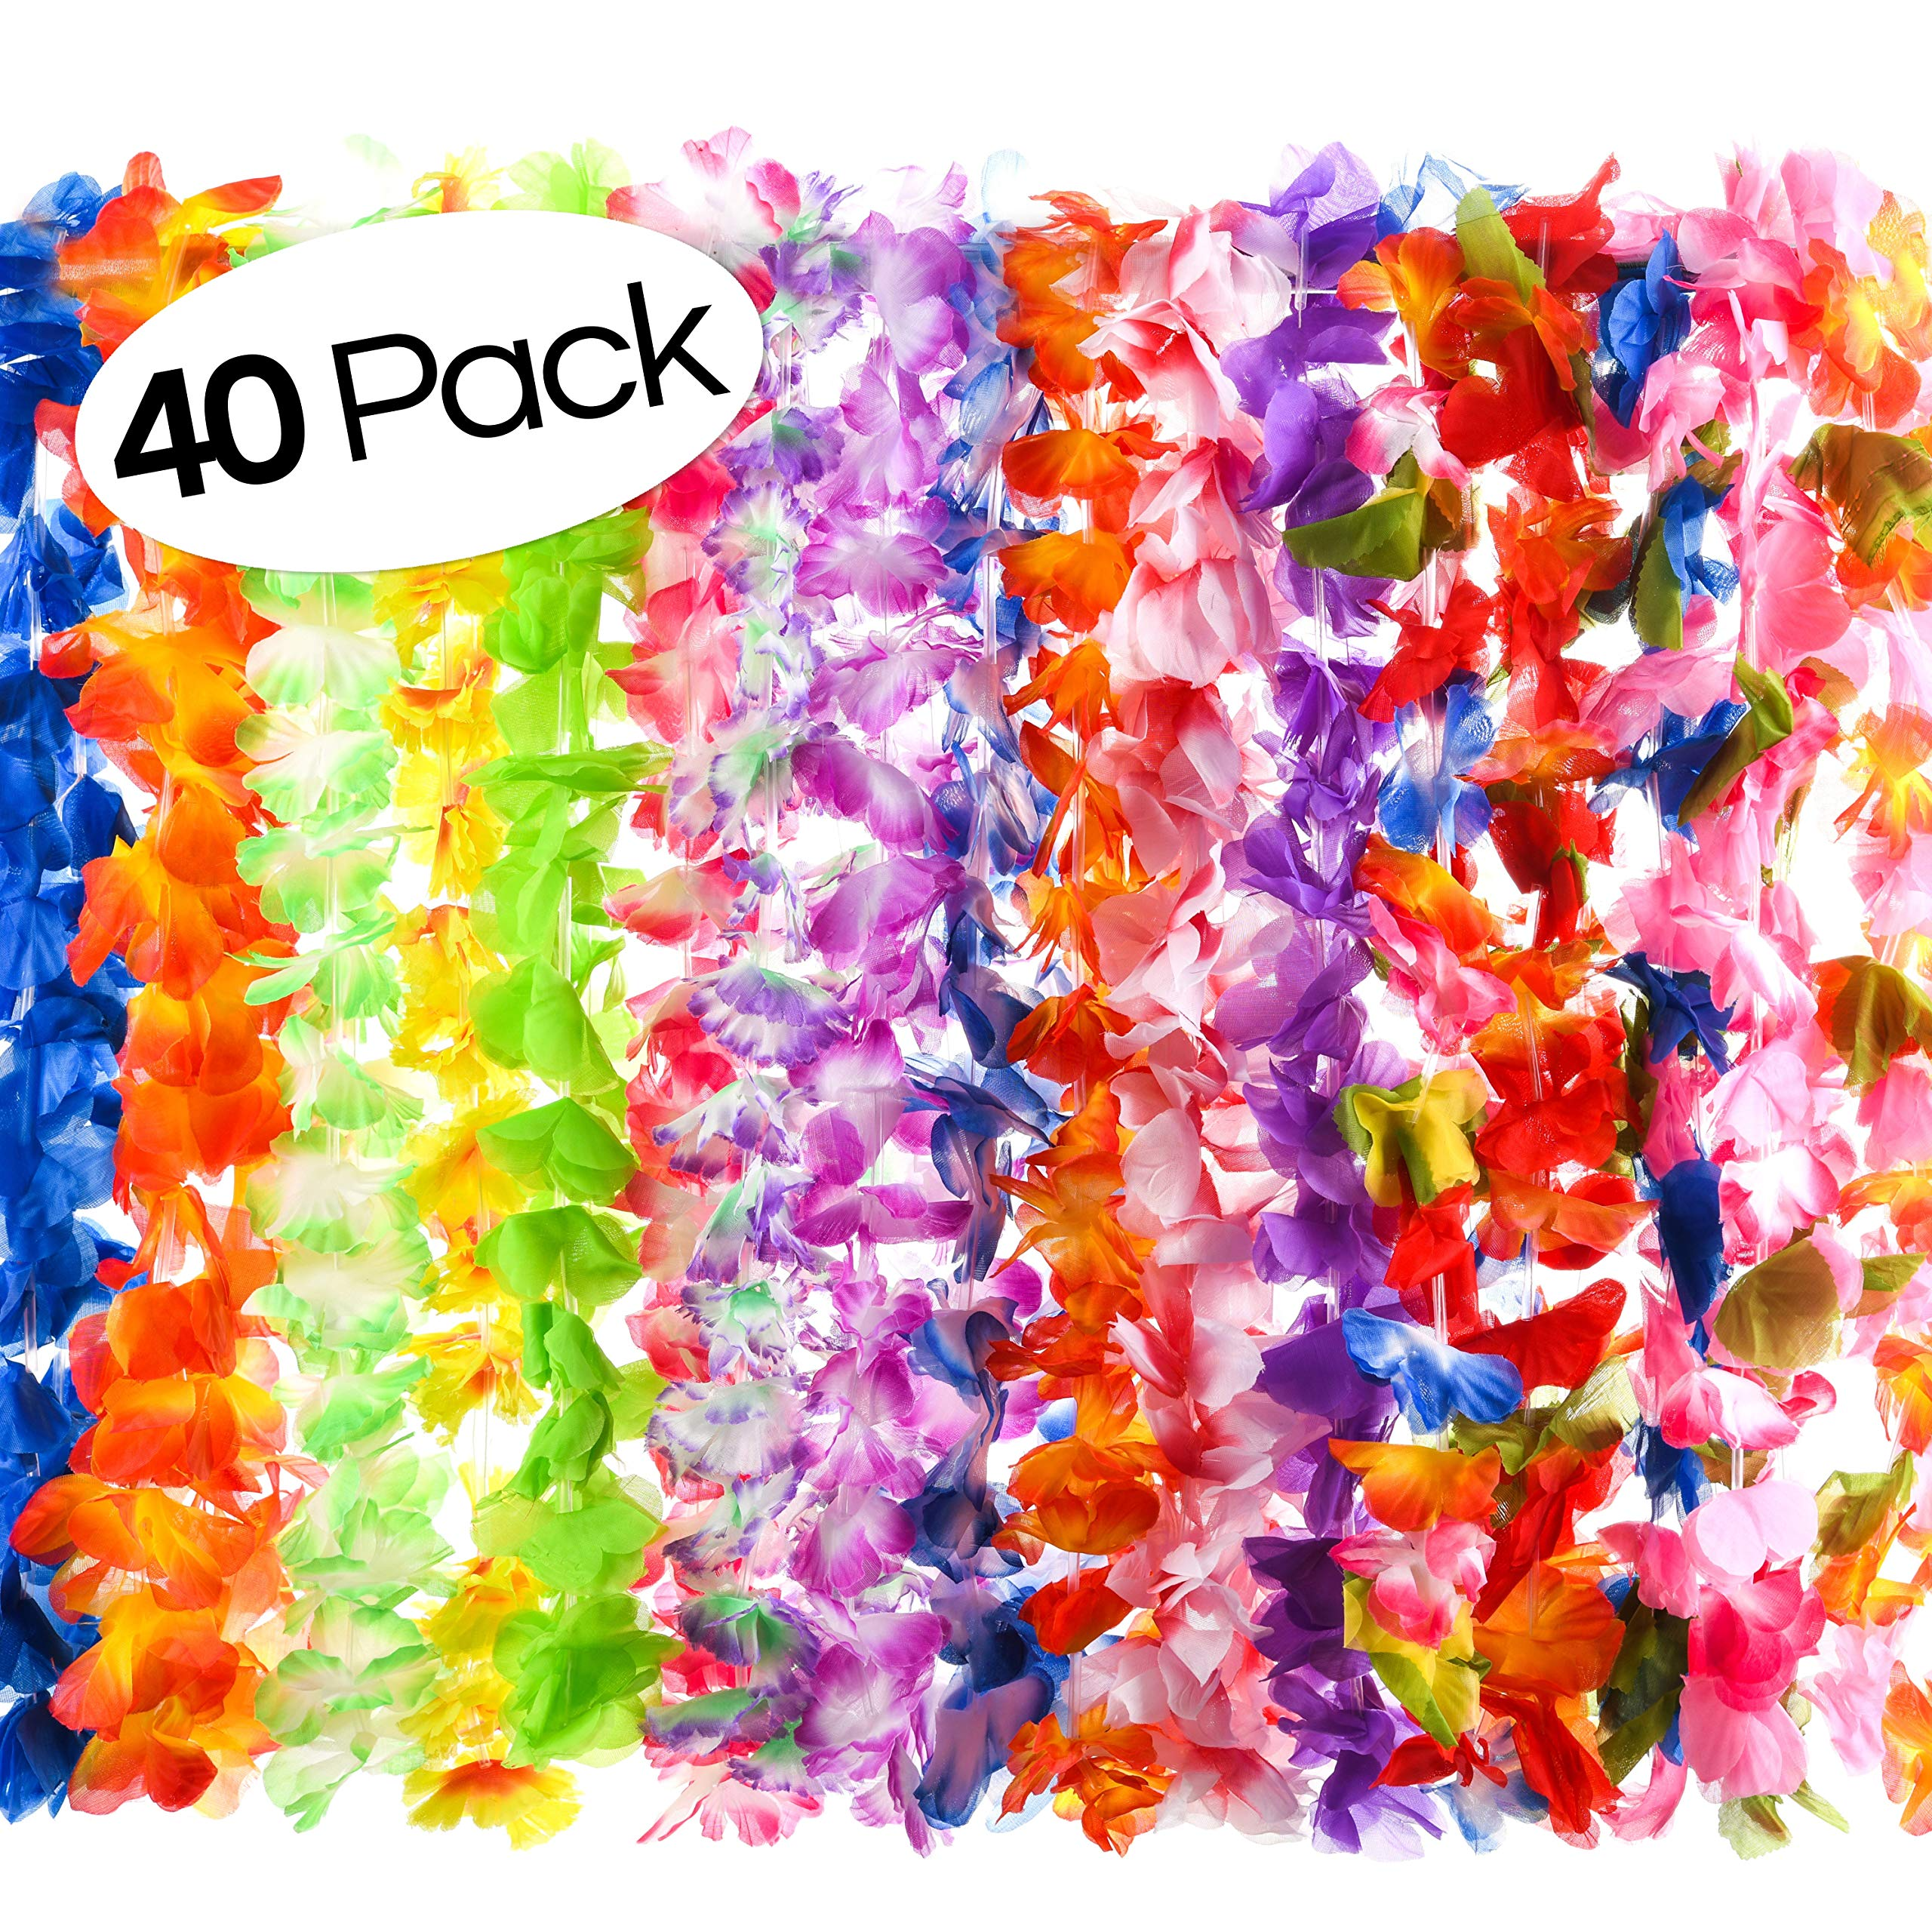 40 Count Hawaiian Flower Lei for Luau Party - Bulk Set of Floral Necklace Leis Vibrant Colors Assortment for Party Favors, Garland Decorations or Ornaments for Any Occasion by Prextex